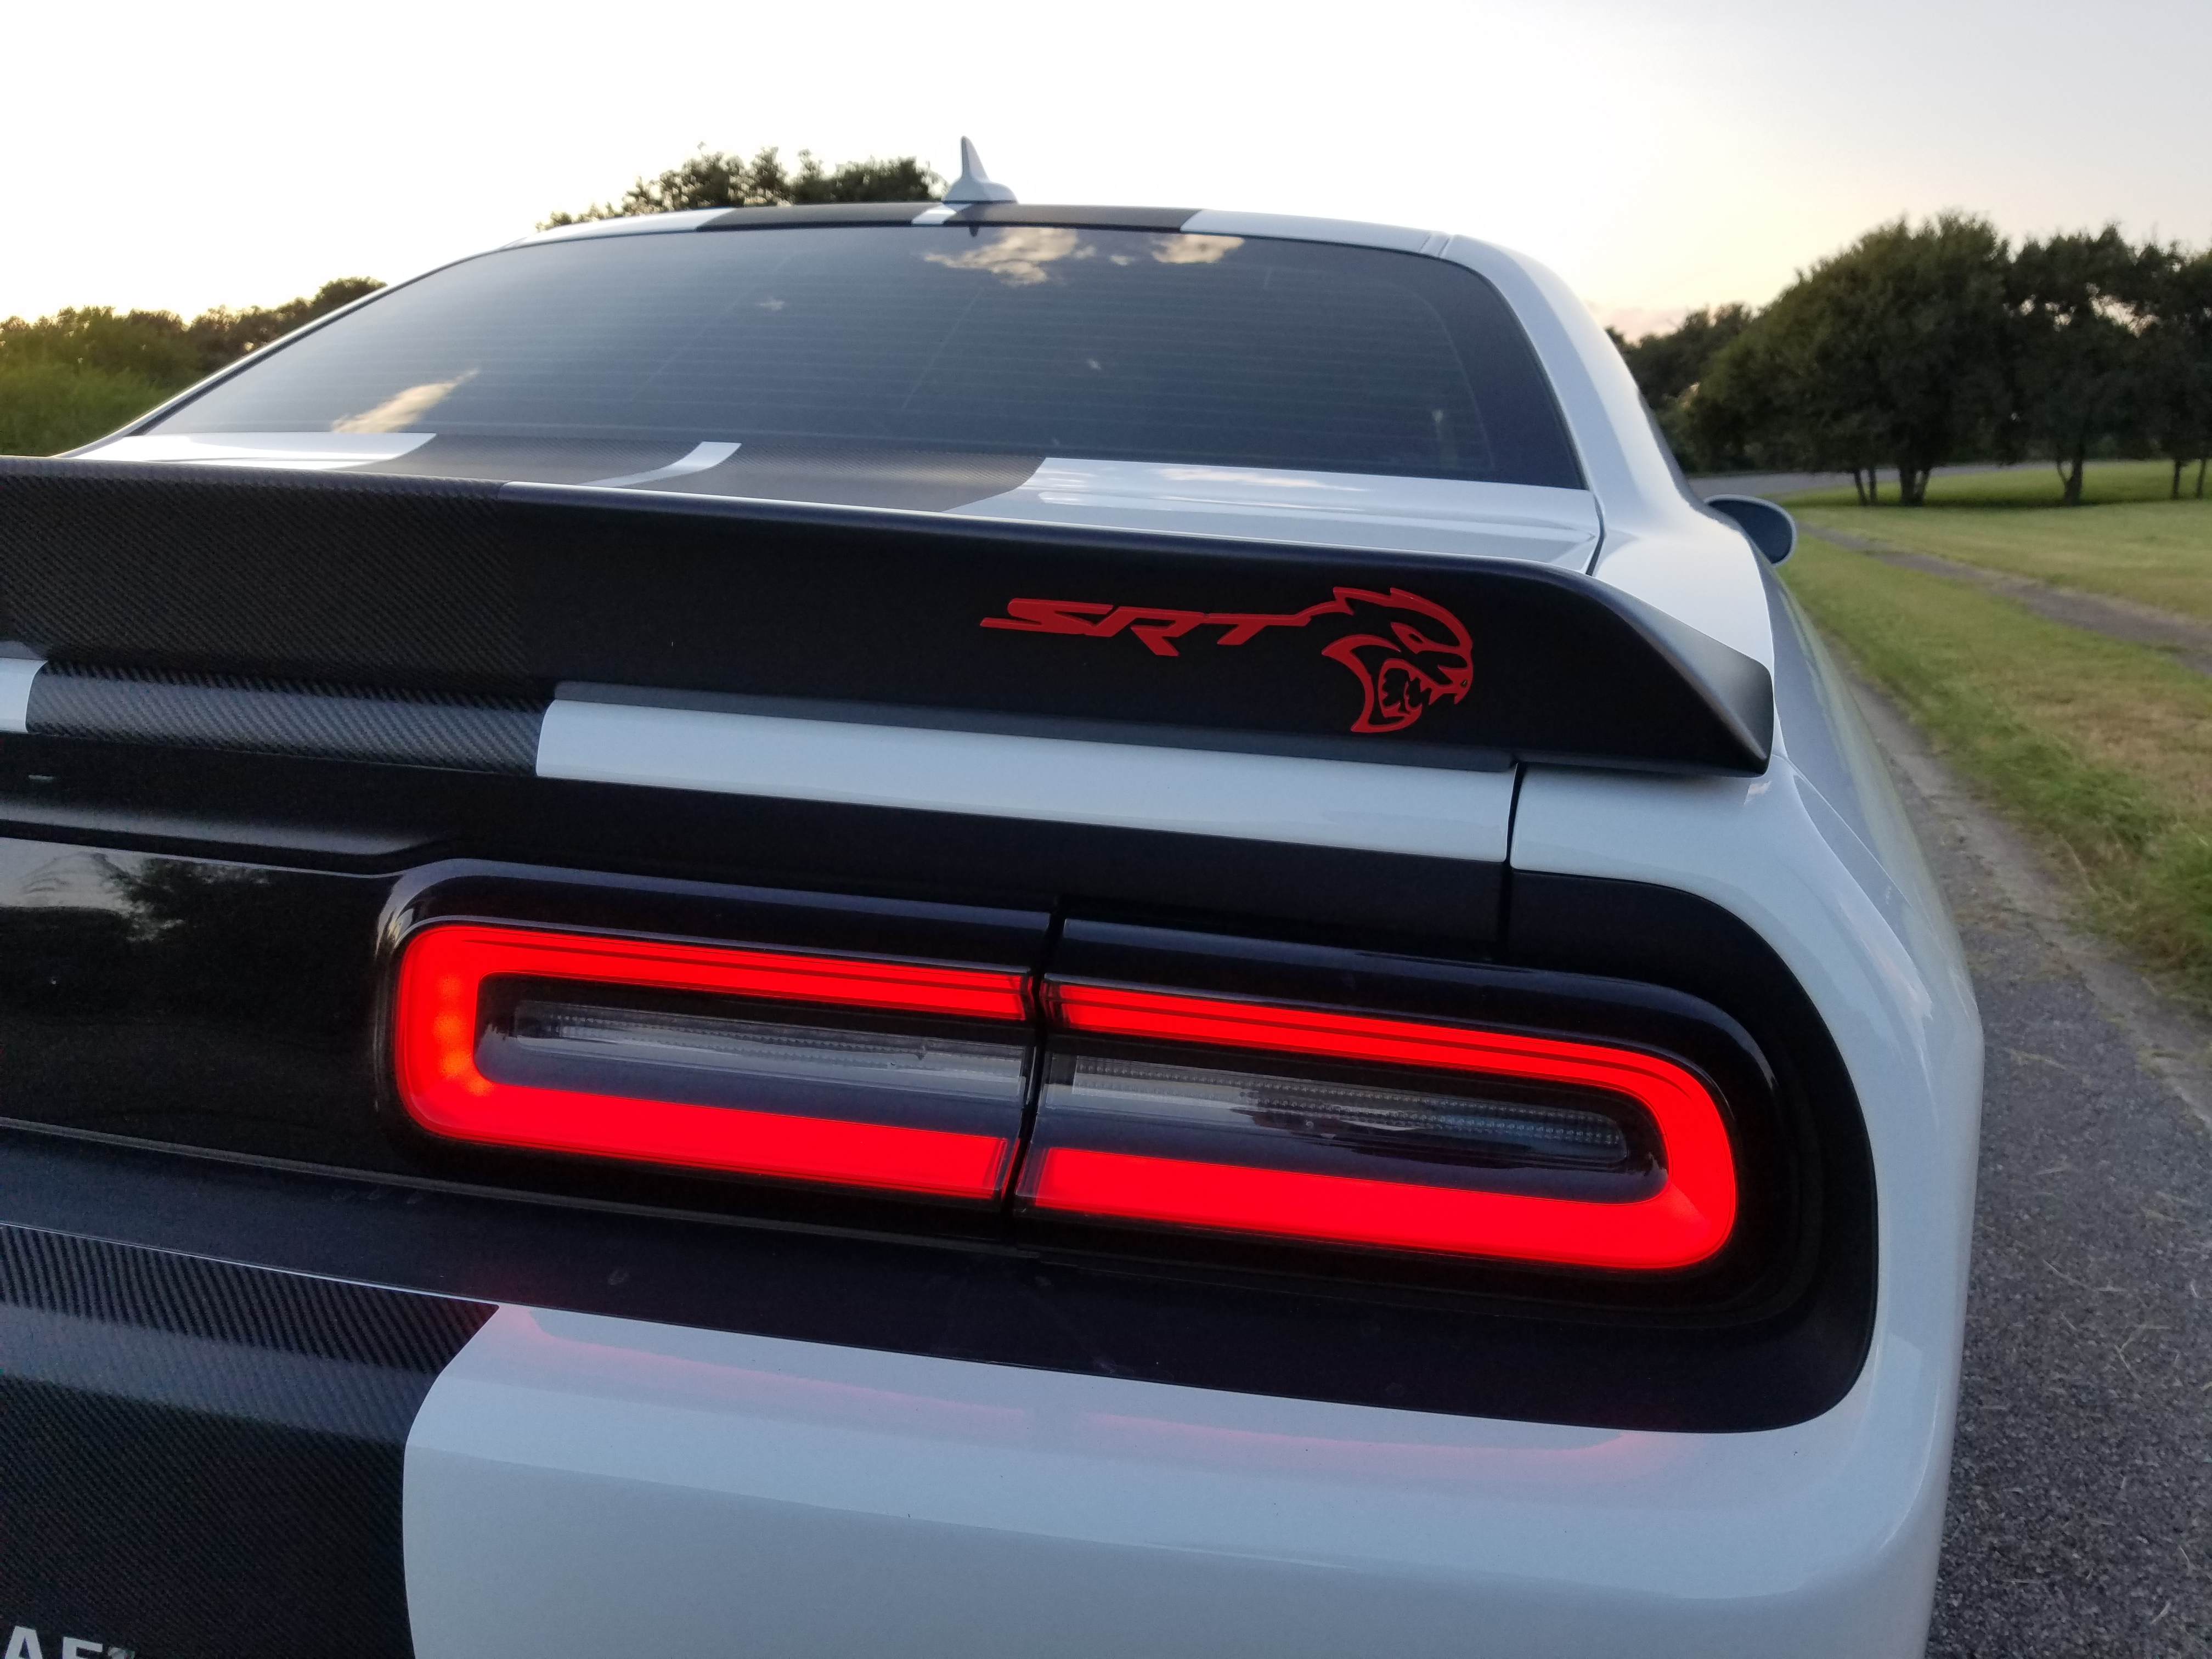 new 2017 oem hellcat badges are they out yet srt hellcat forum. Black Bedroom Furniture Sets. Home Design Ideas